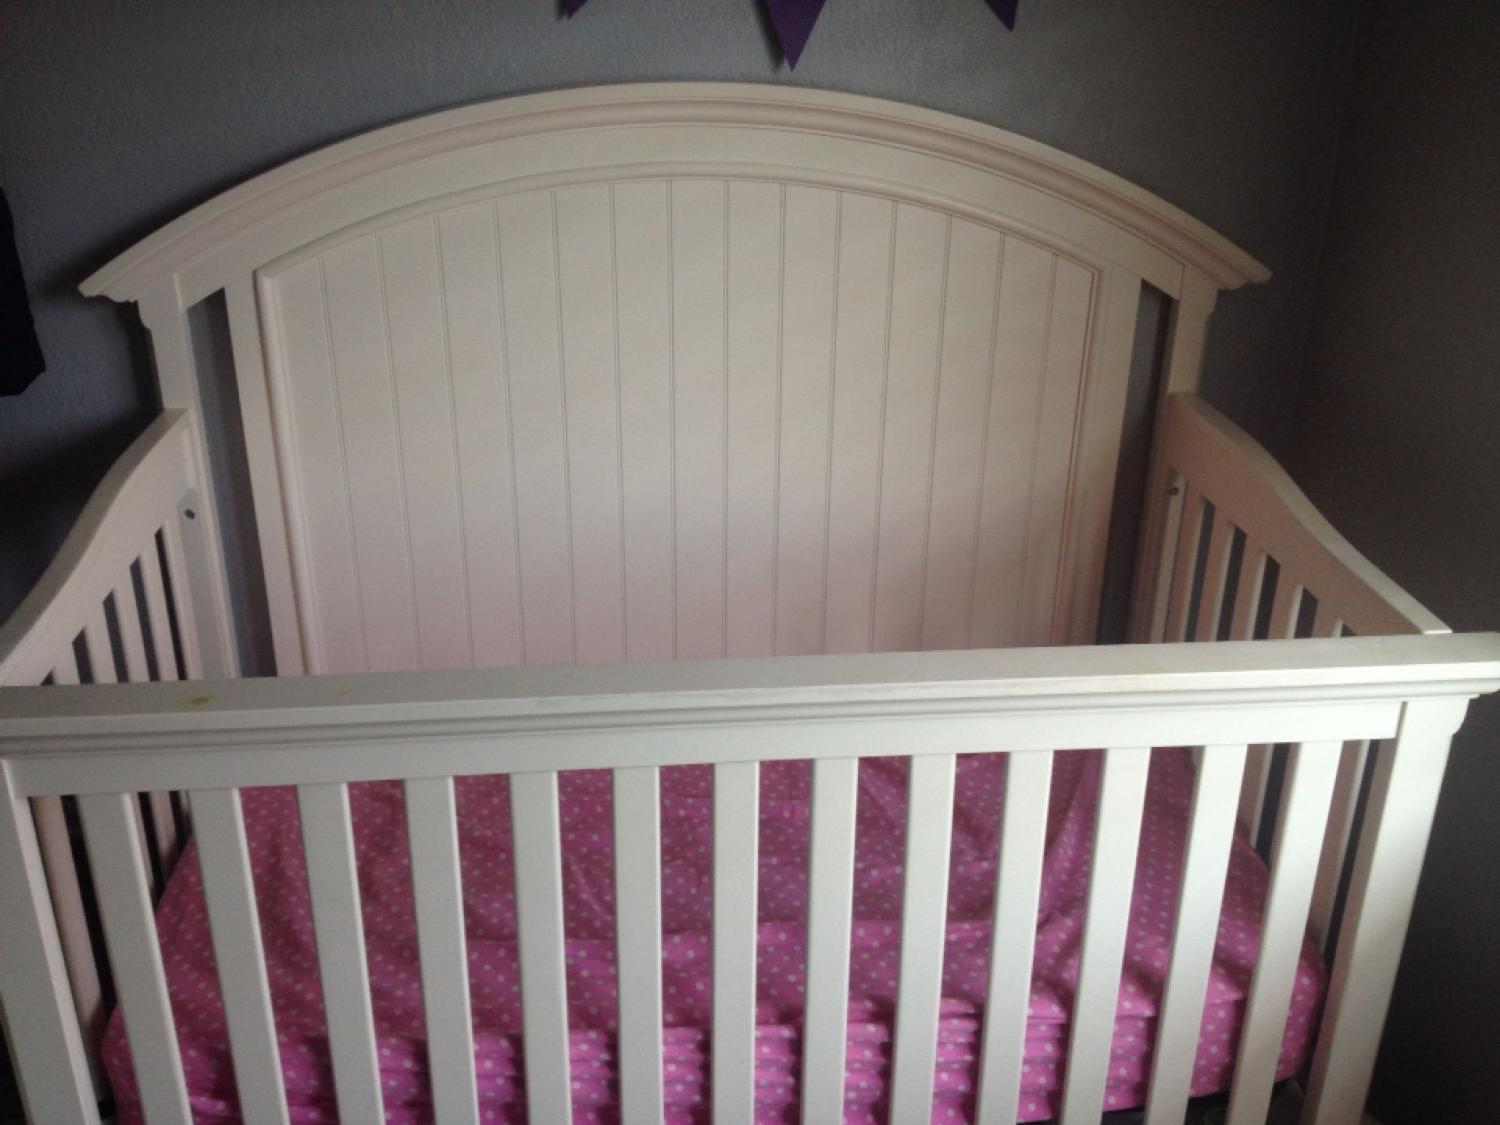 Crib for sale victoria bc - Find More Broadmoore Molly 3 In 1 Convertible Crib Bed For Sale At Up To 90 Off Victoria Bc